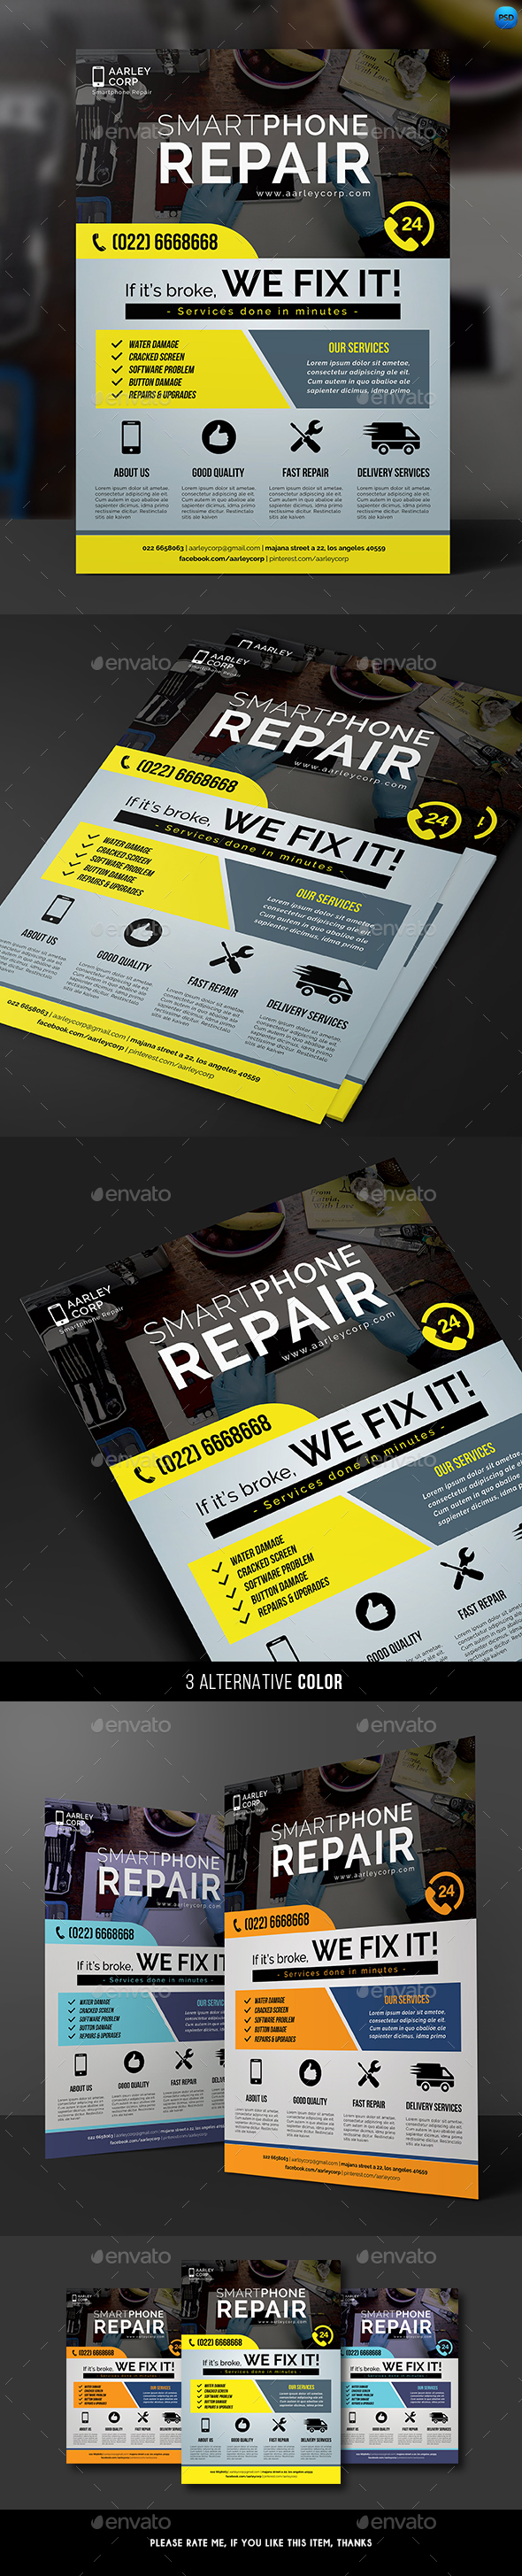 Smartphone Repair Flyer - Corporate Flyers